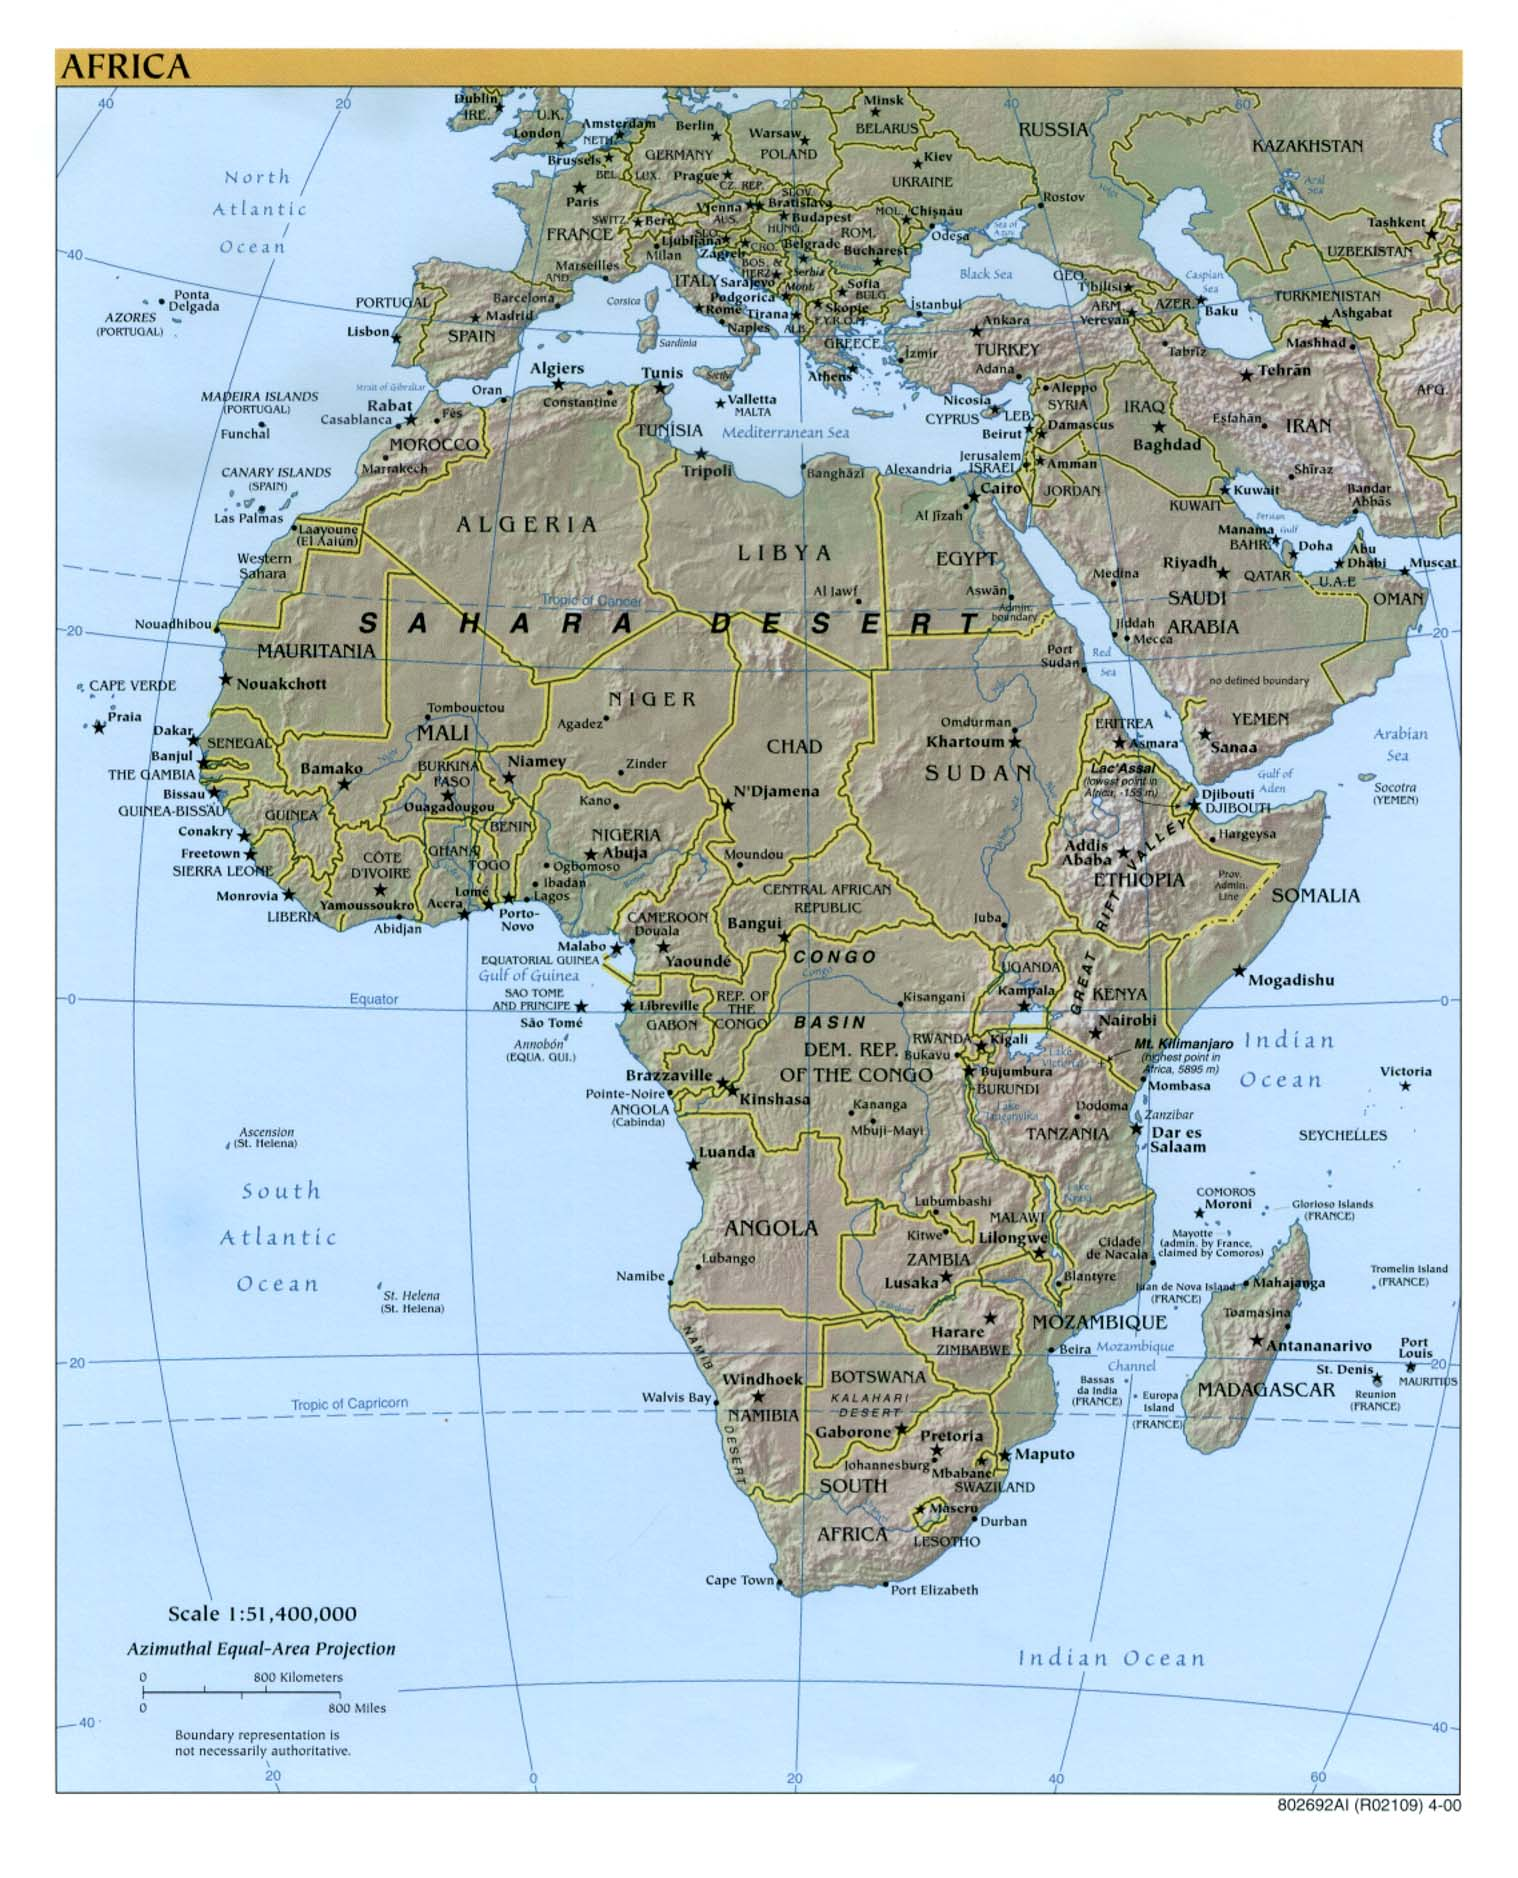 Africa physical map 2000